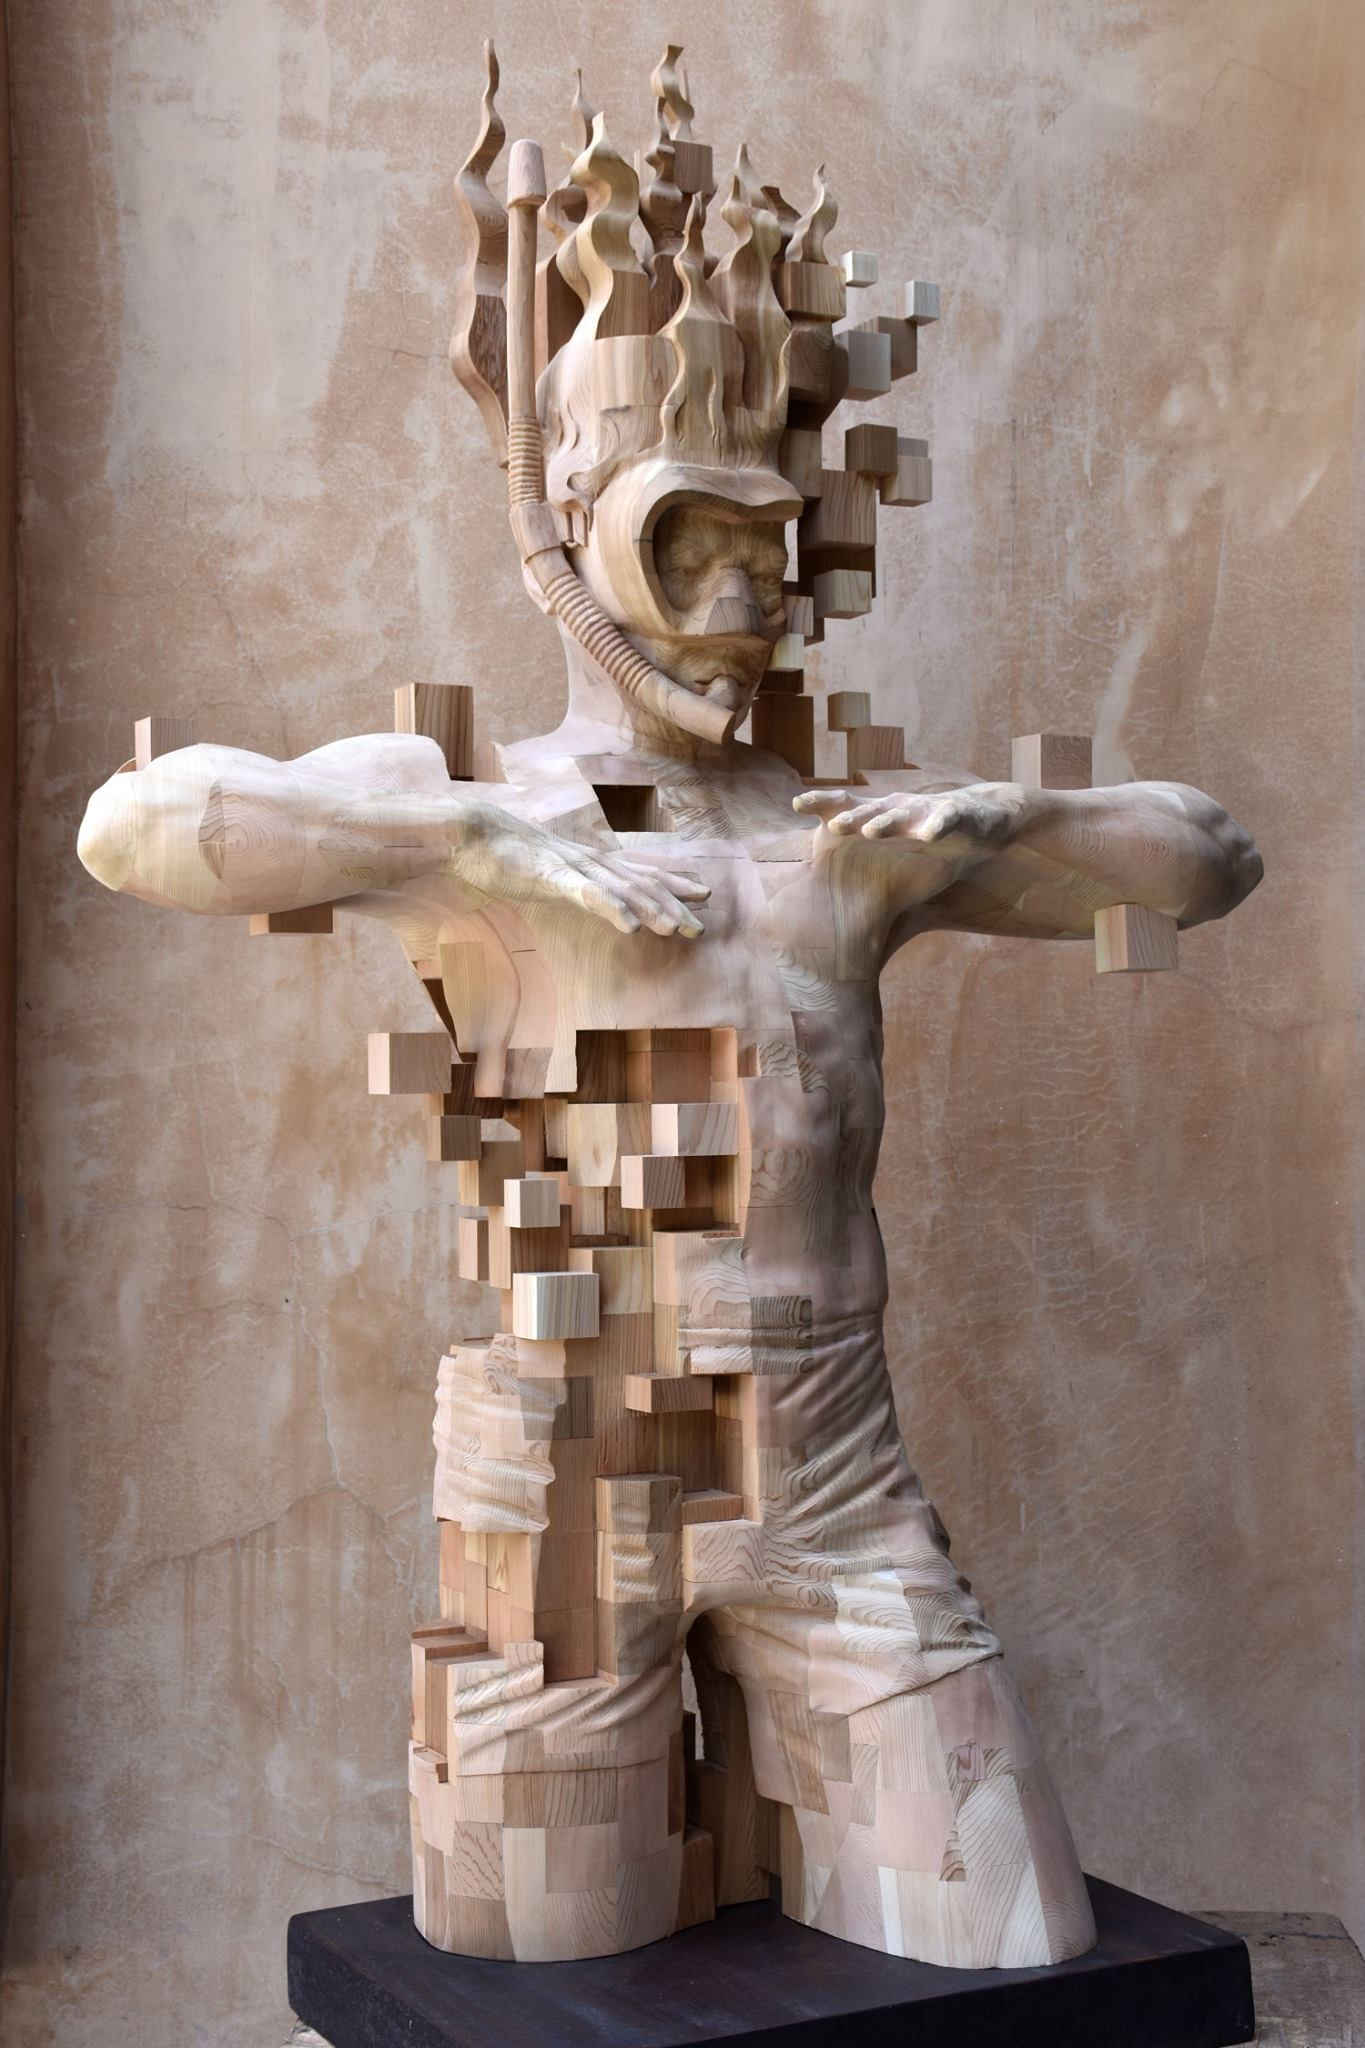 Hsu Tung Han – Wood sculpture